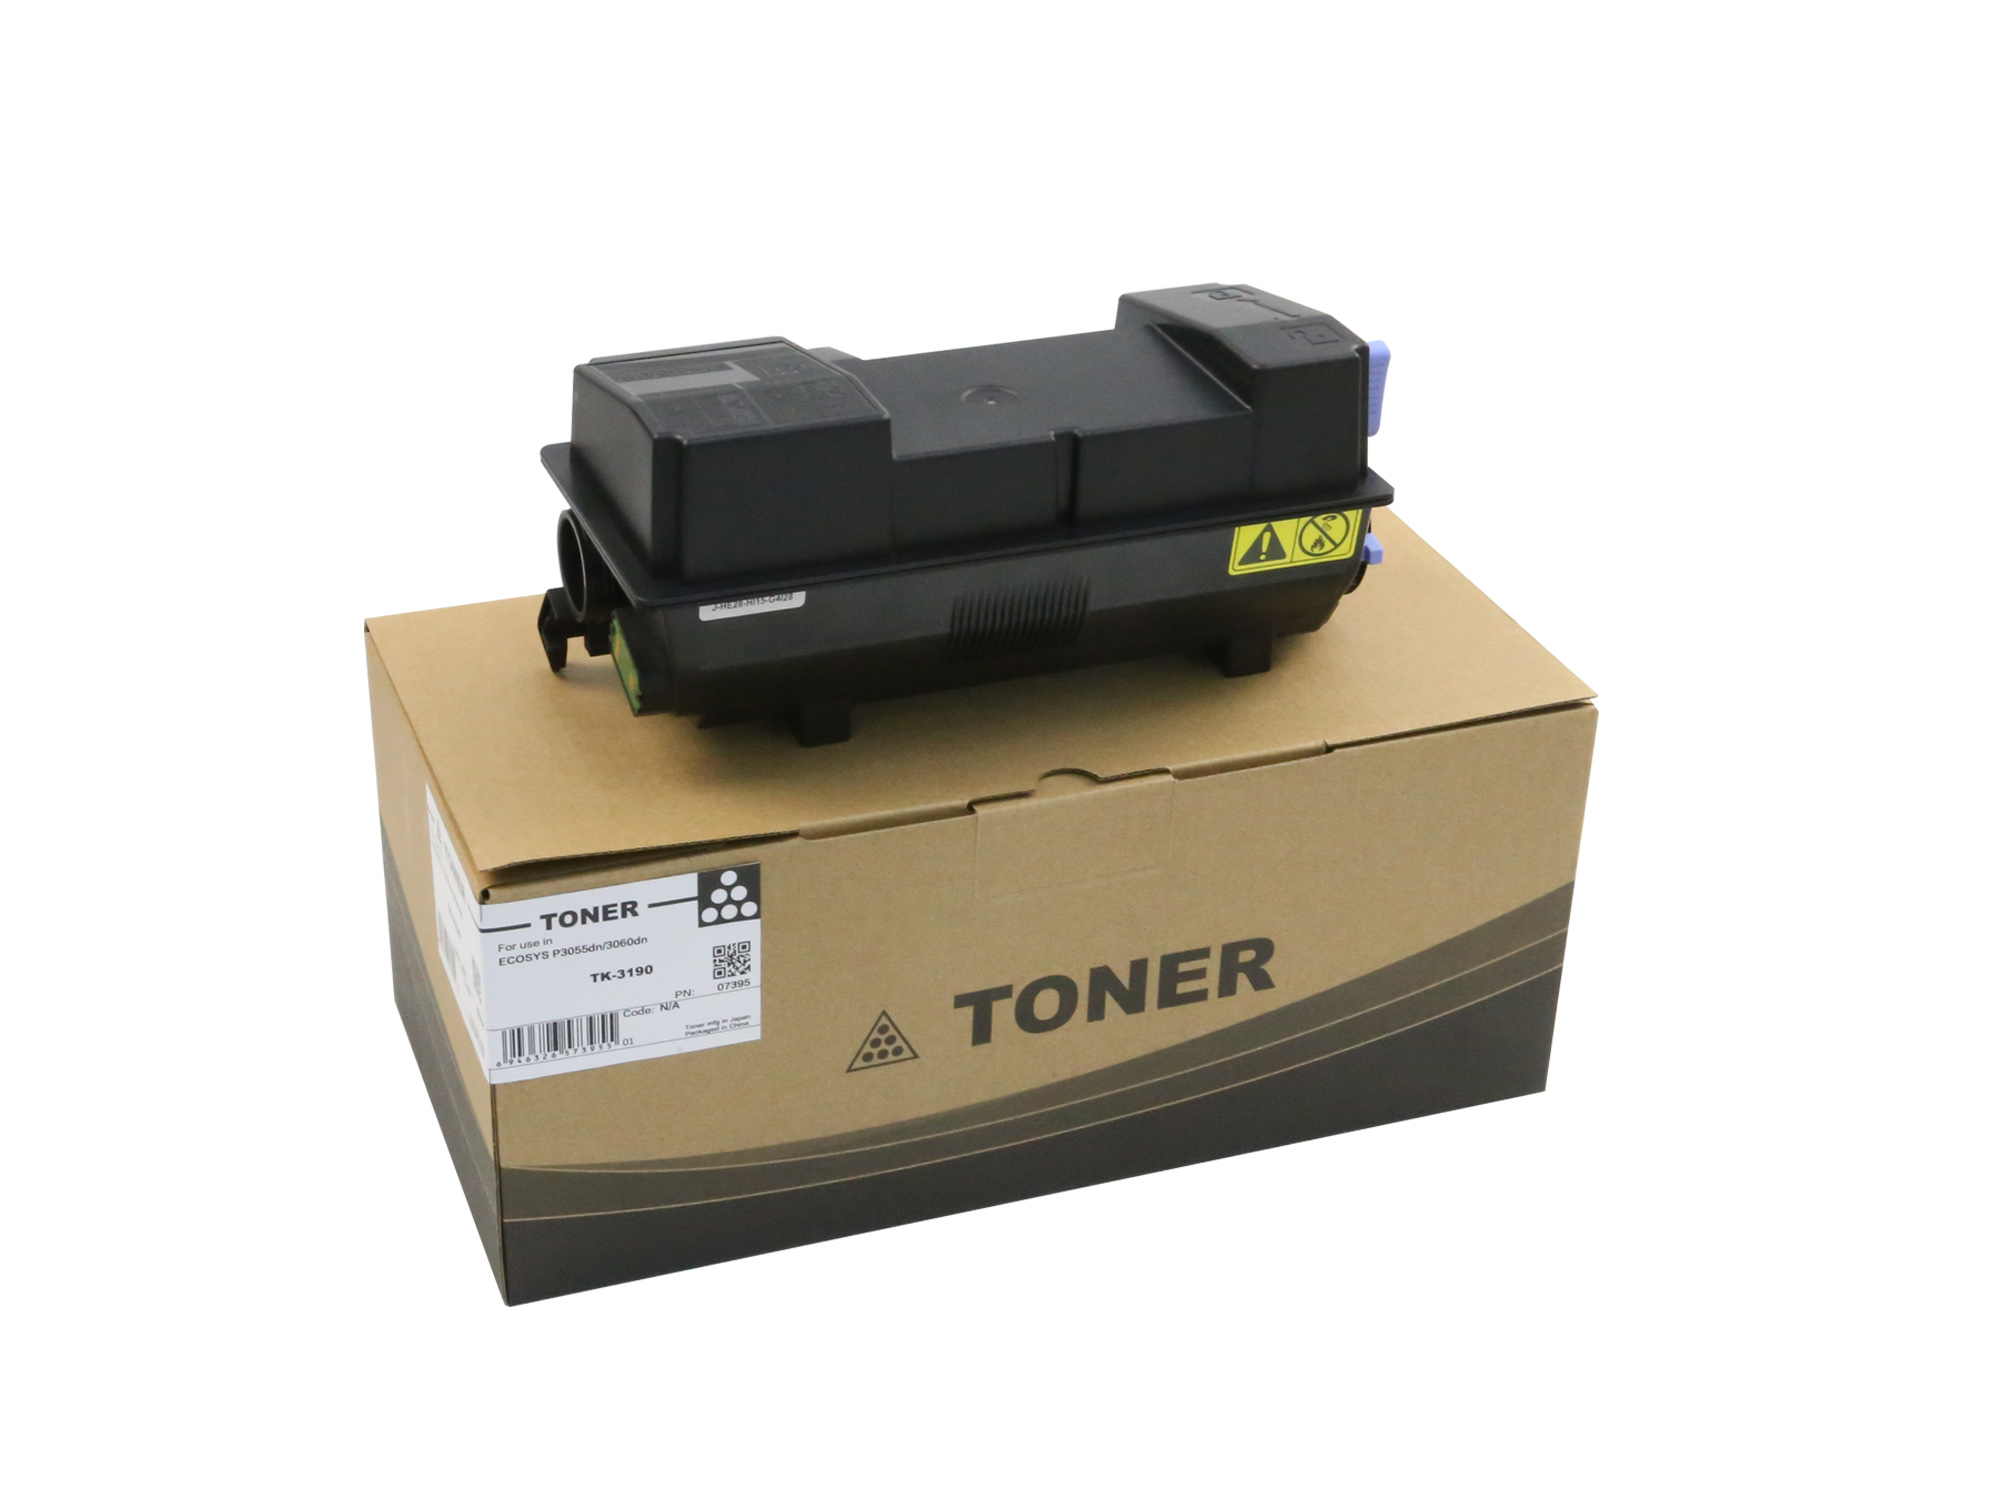 TK-3190 Toner Cartridge for Kyocera ECOSYS P3055dn